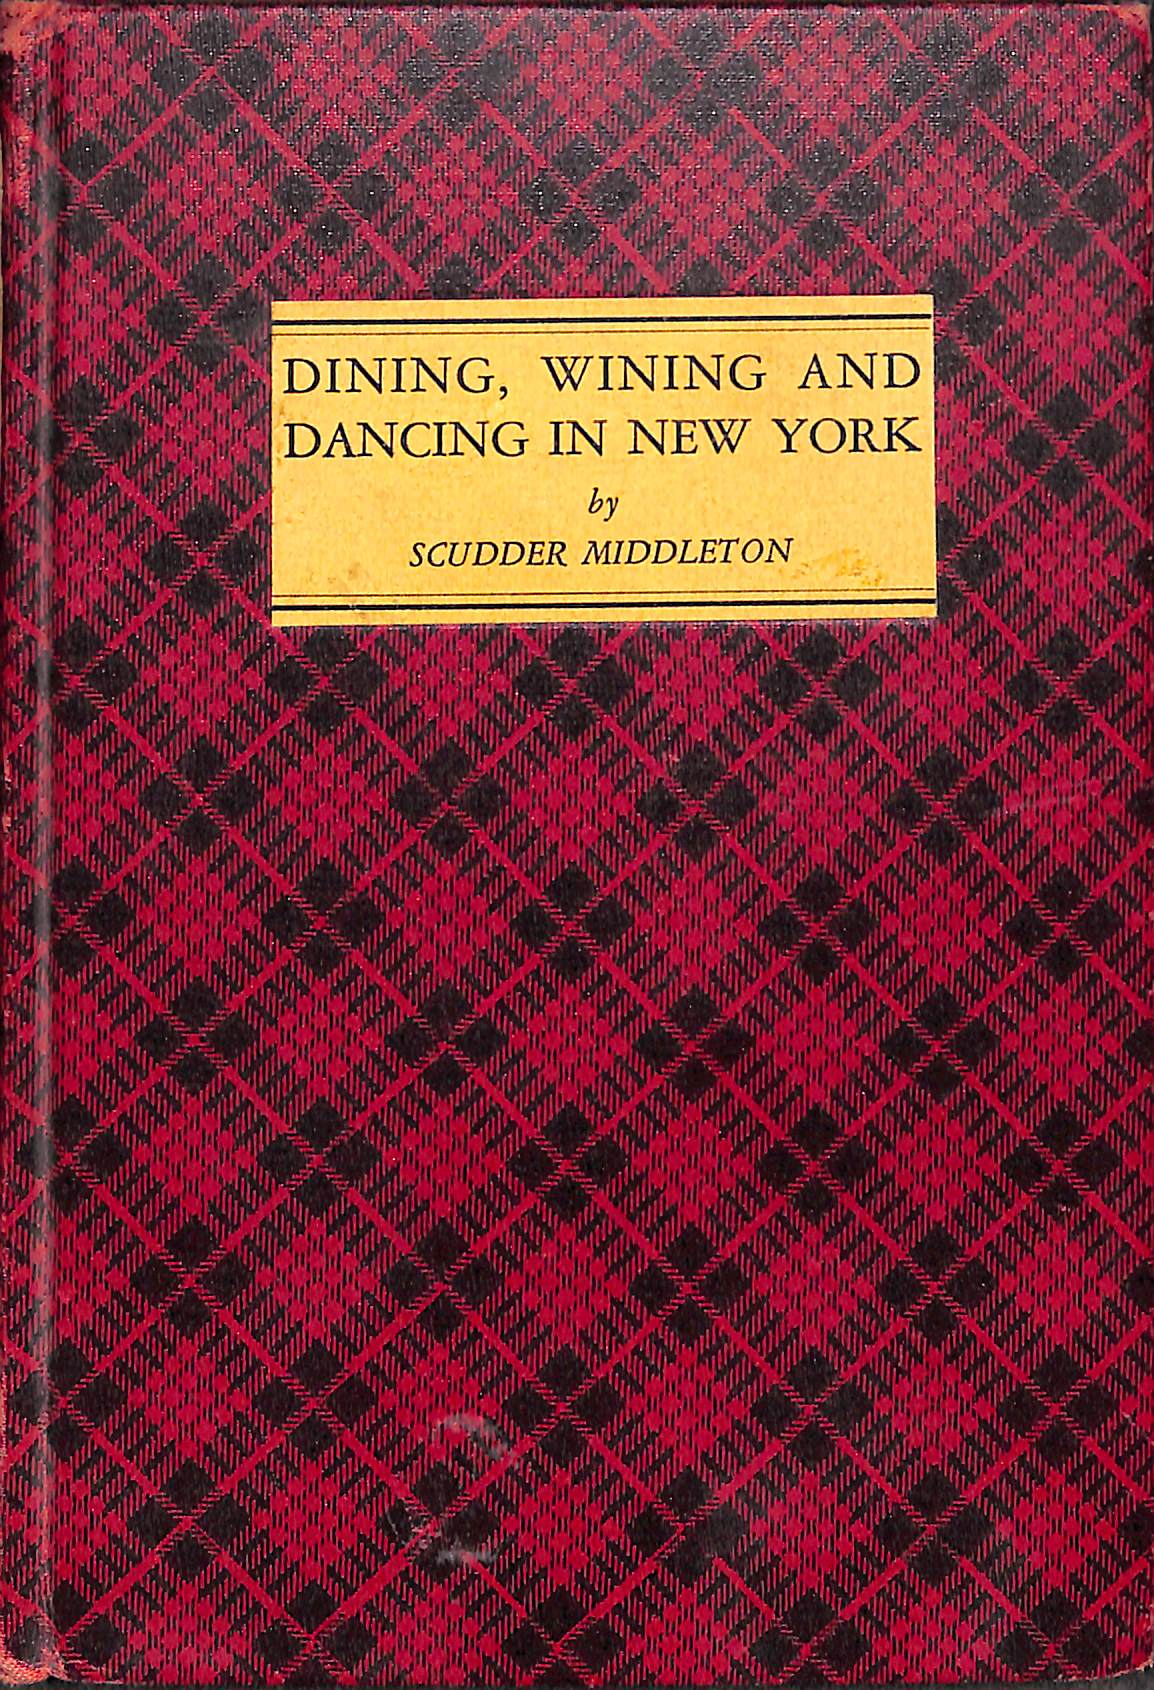 'Dining, Wining and Dancing in New York' by Scudder Middleton